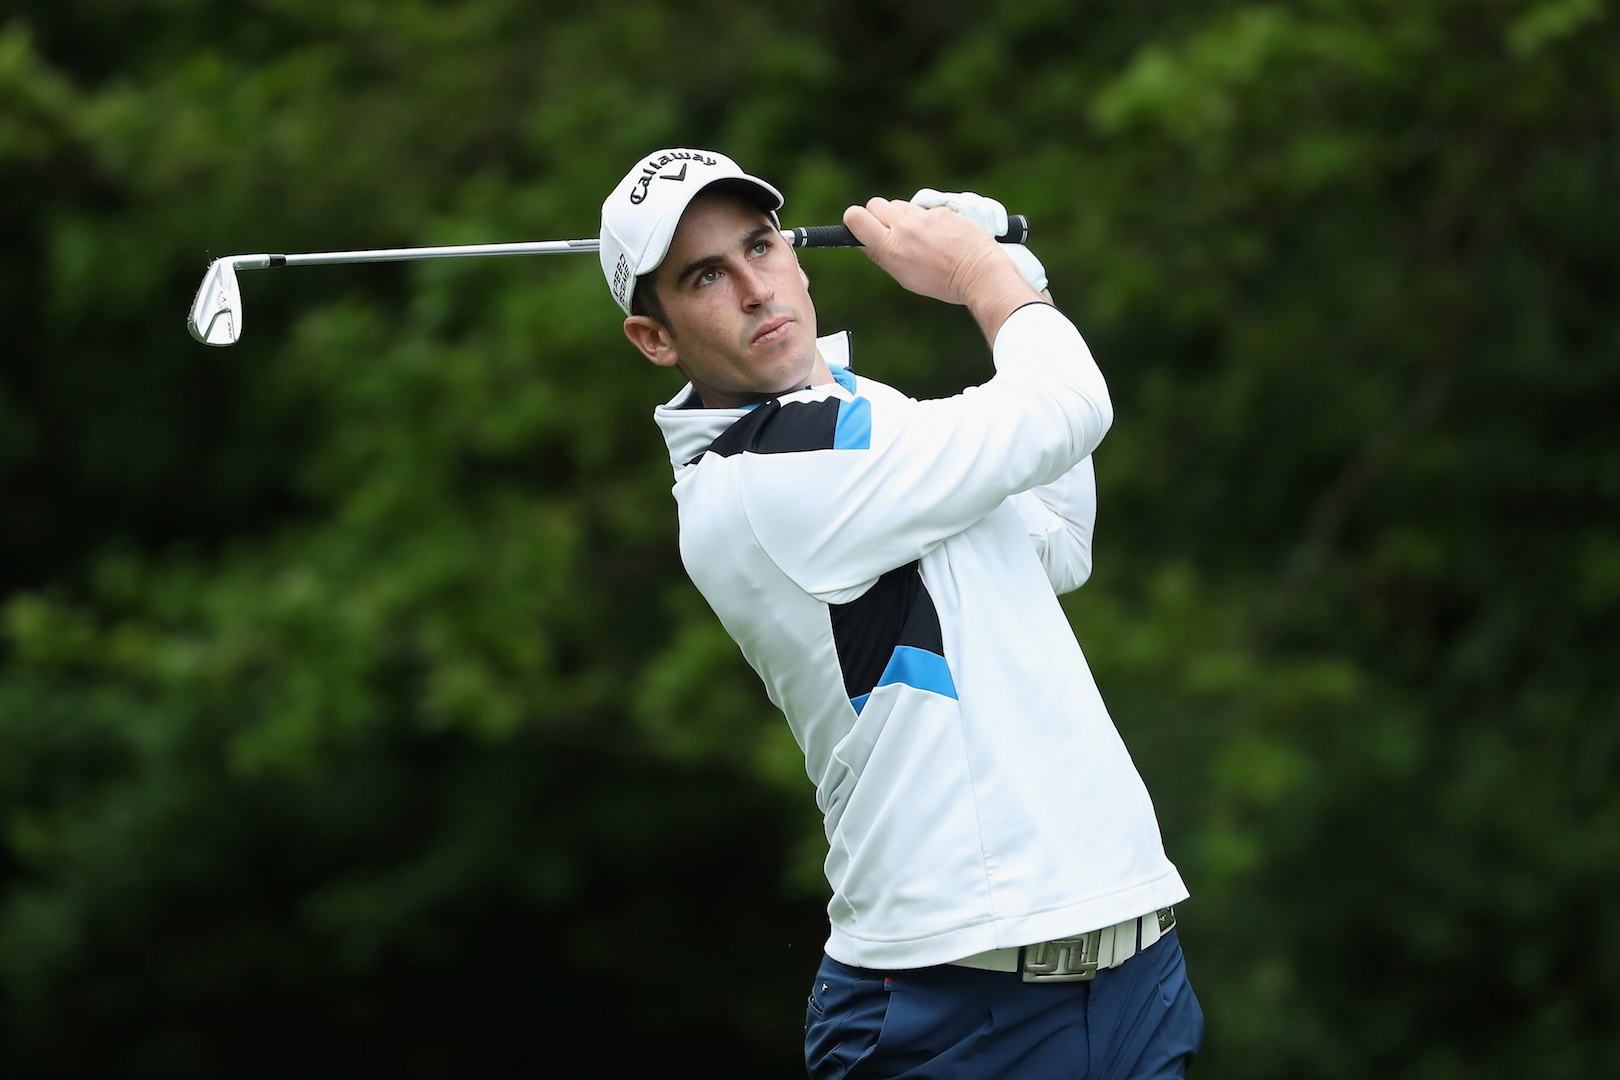 Cricketer Craig Kieswetter goes for Tour Card